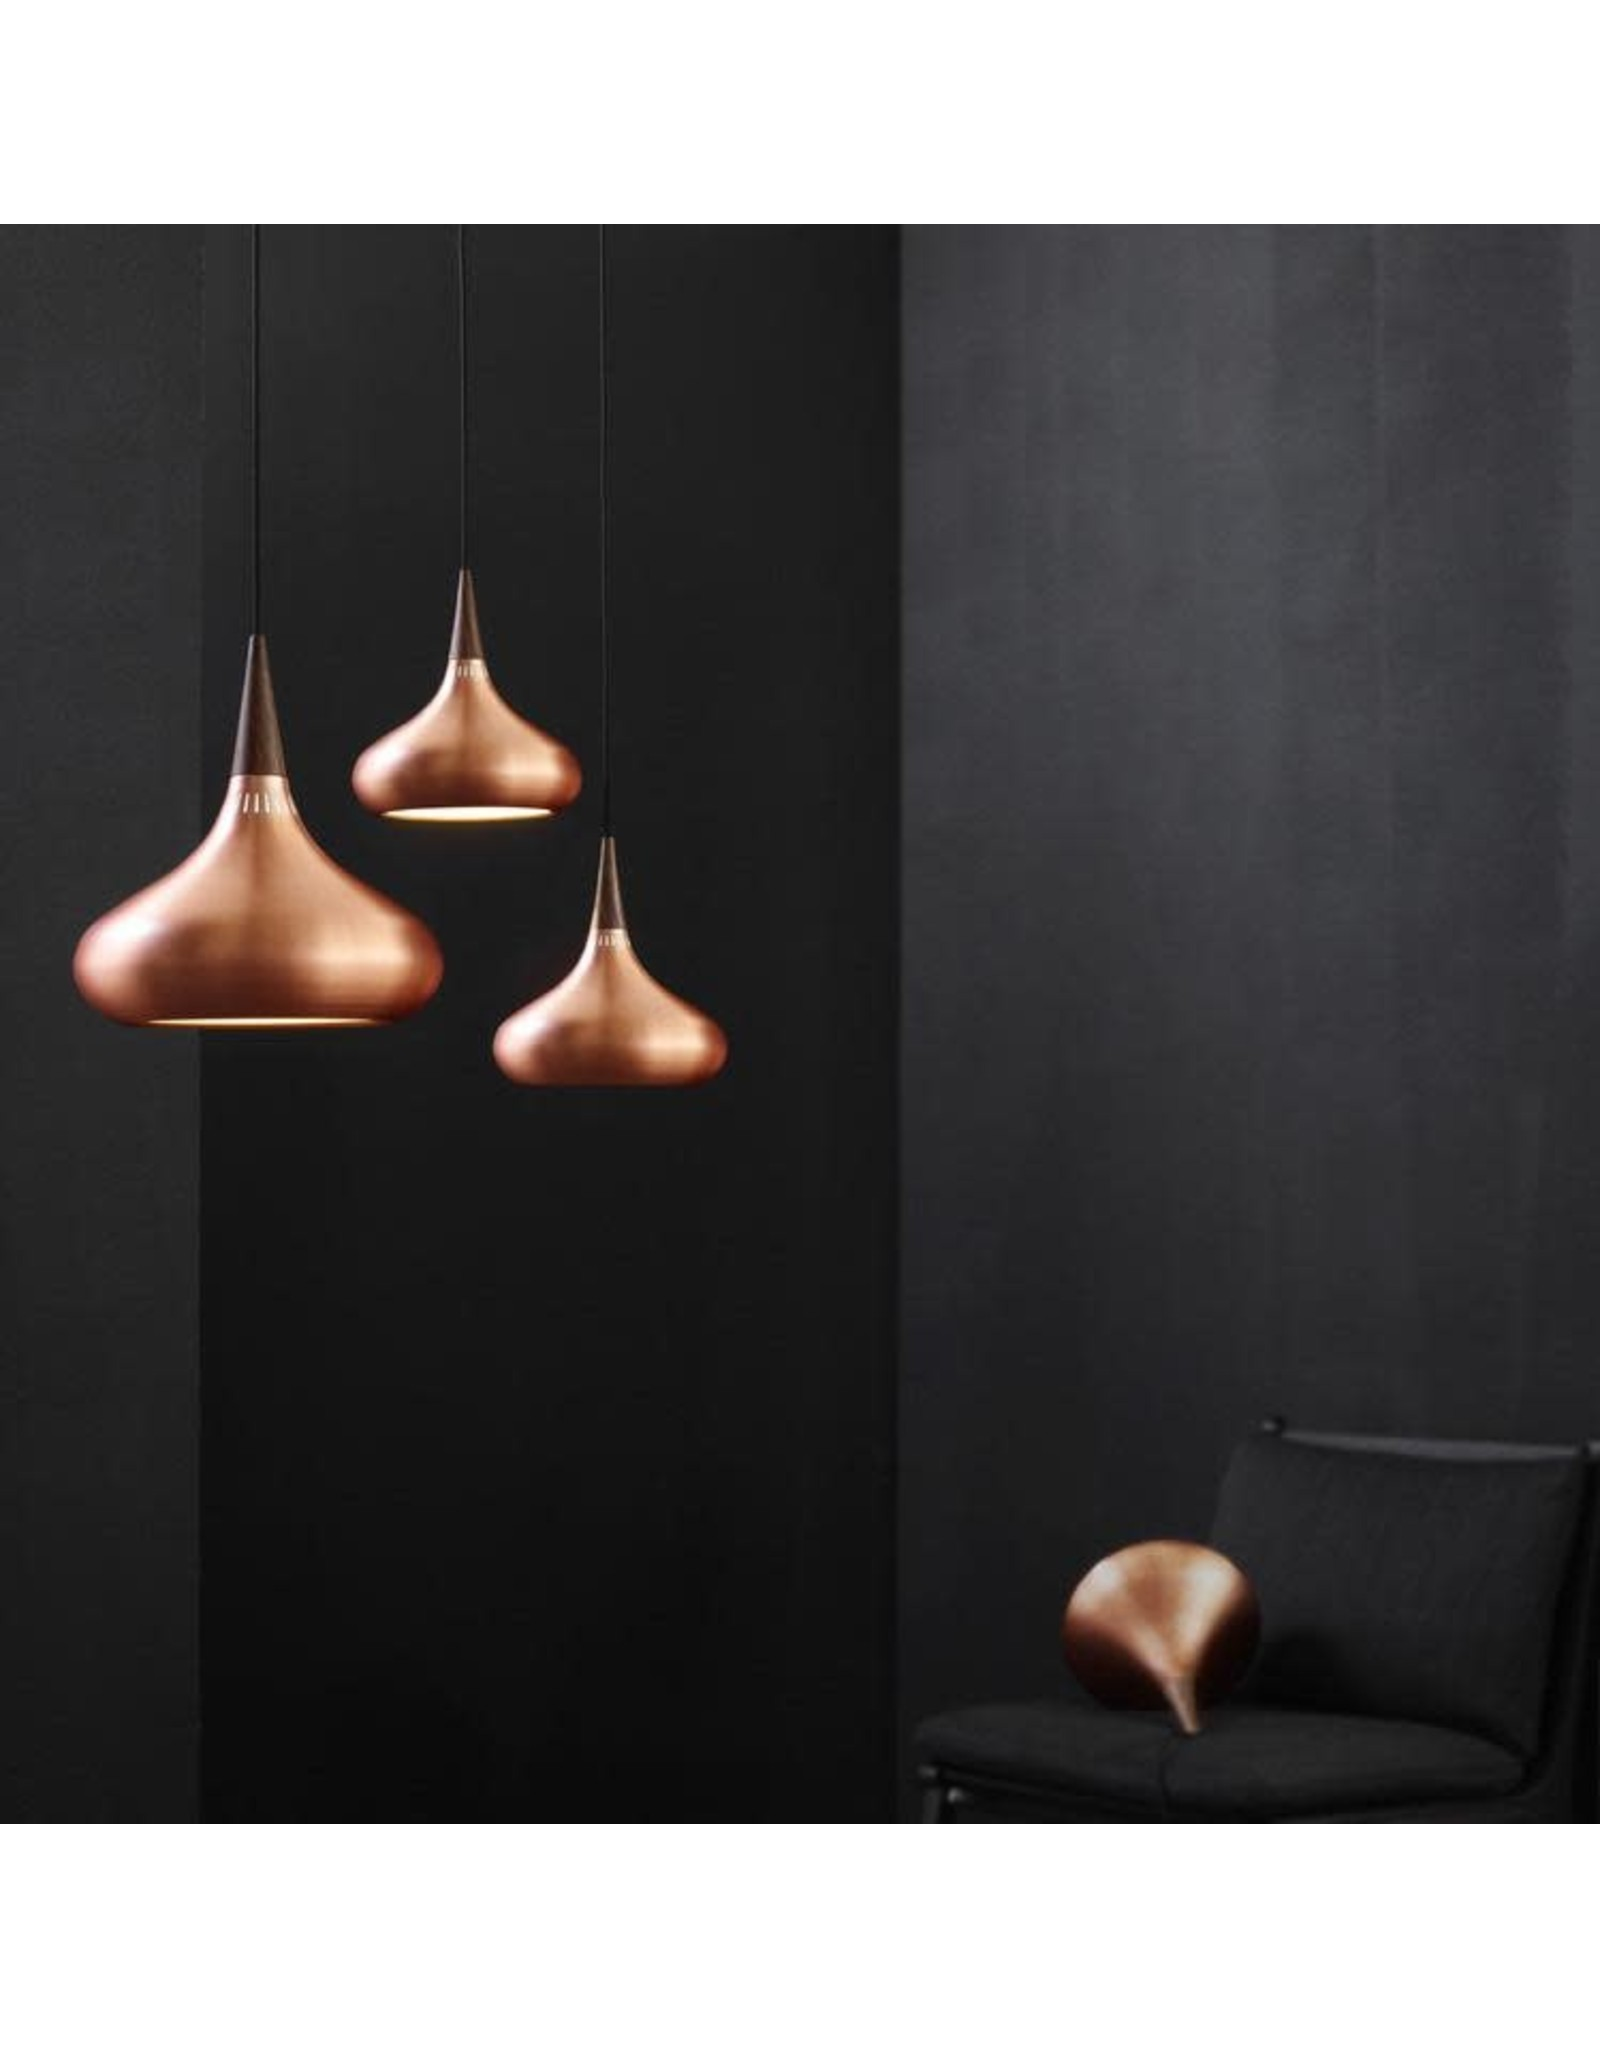 ORIENT PENDANT IN POLISHED COPPER